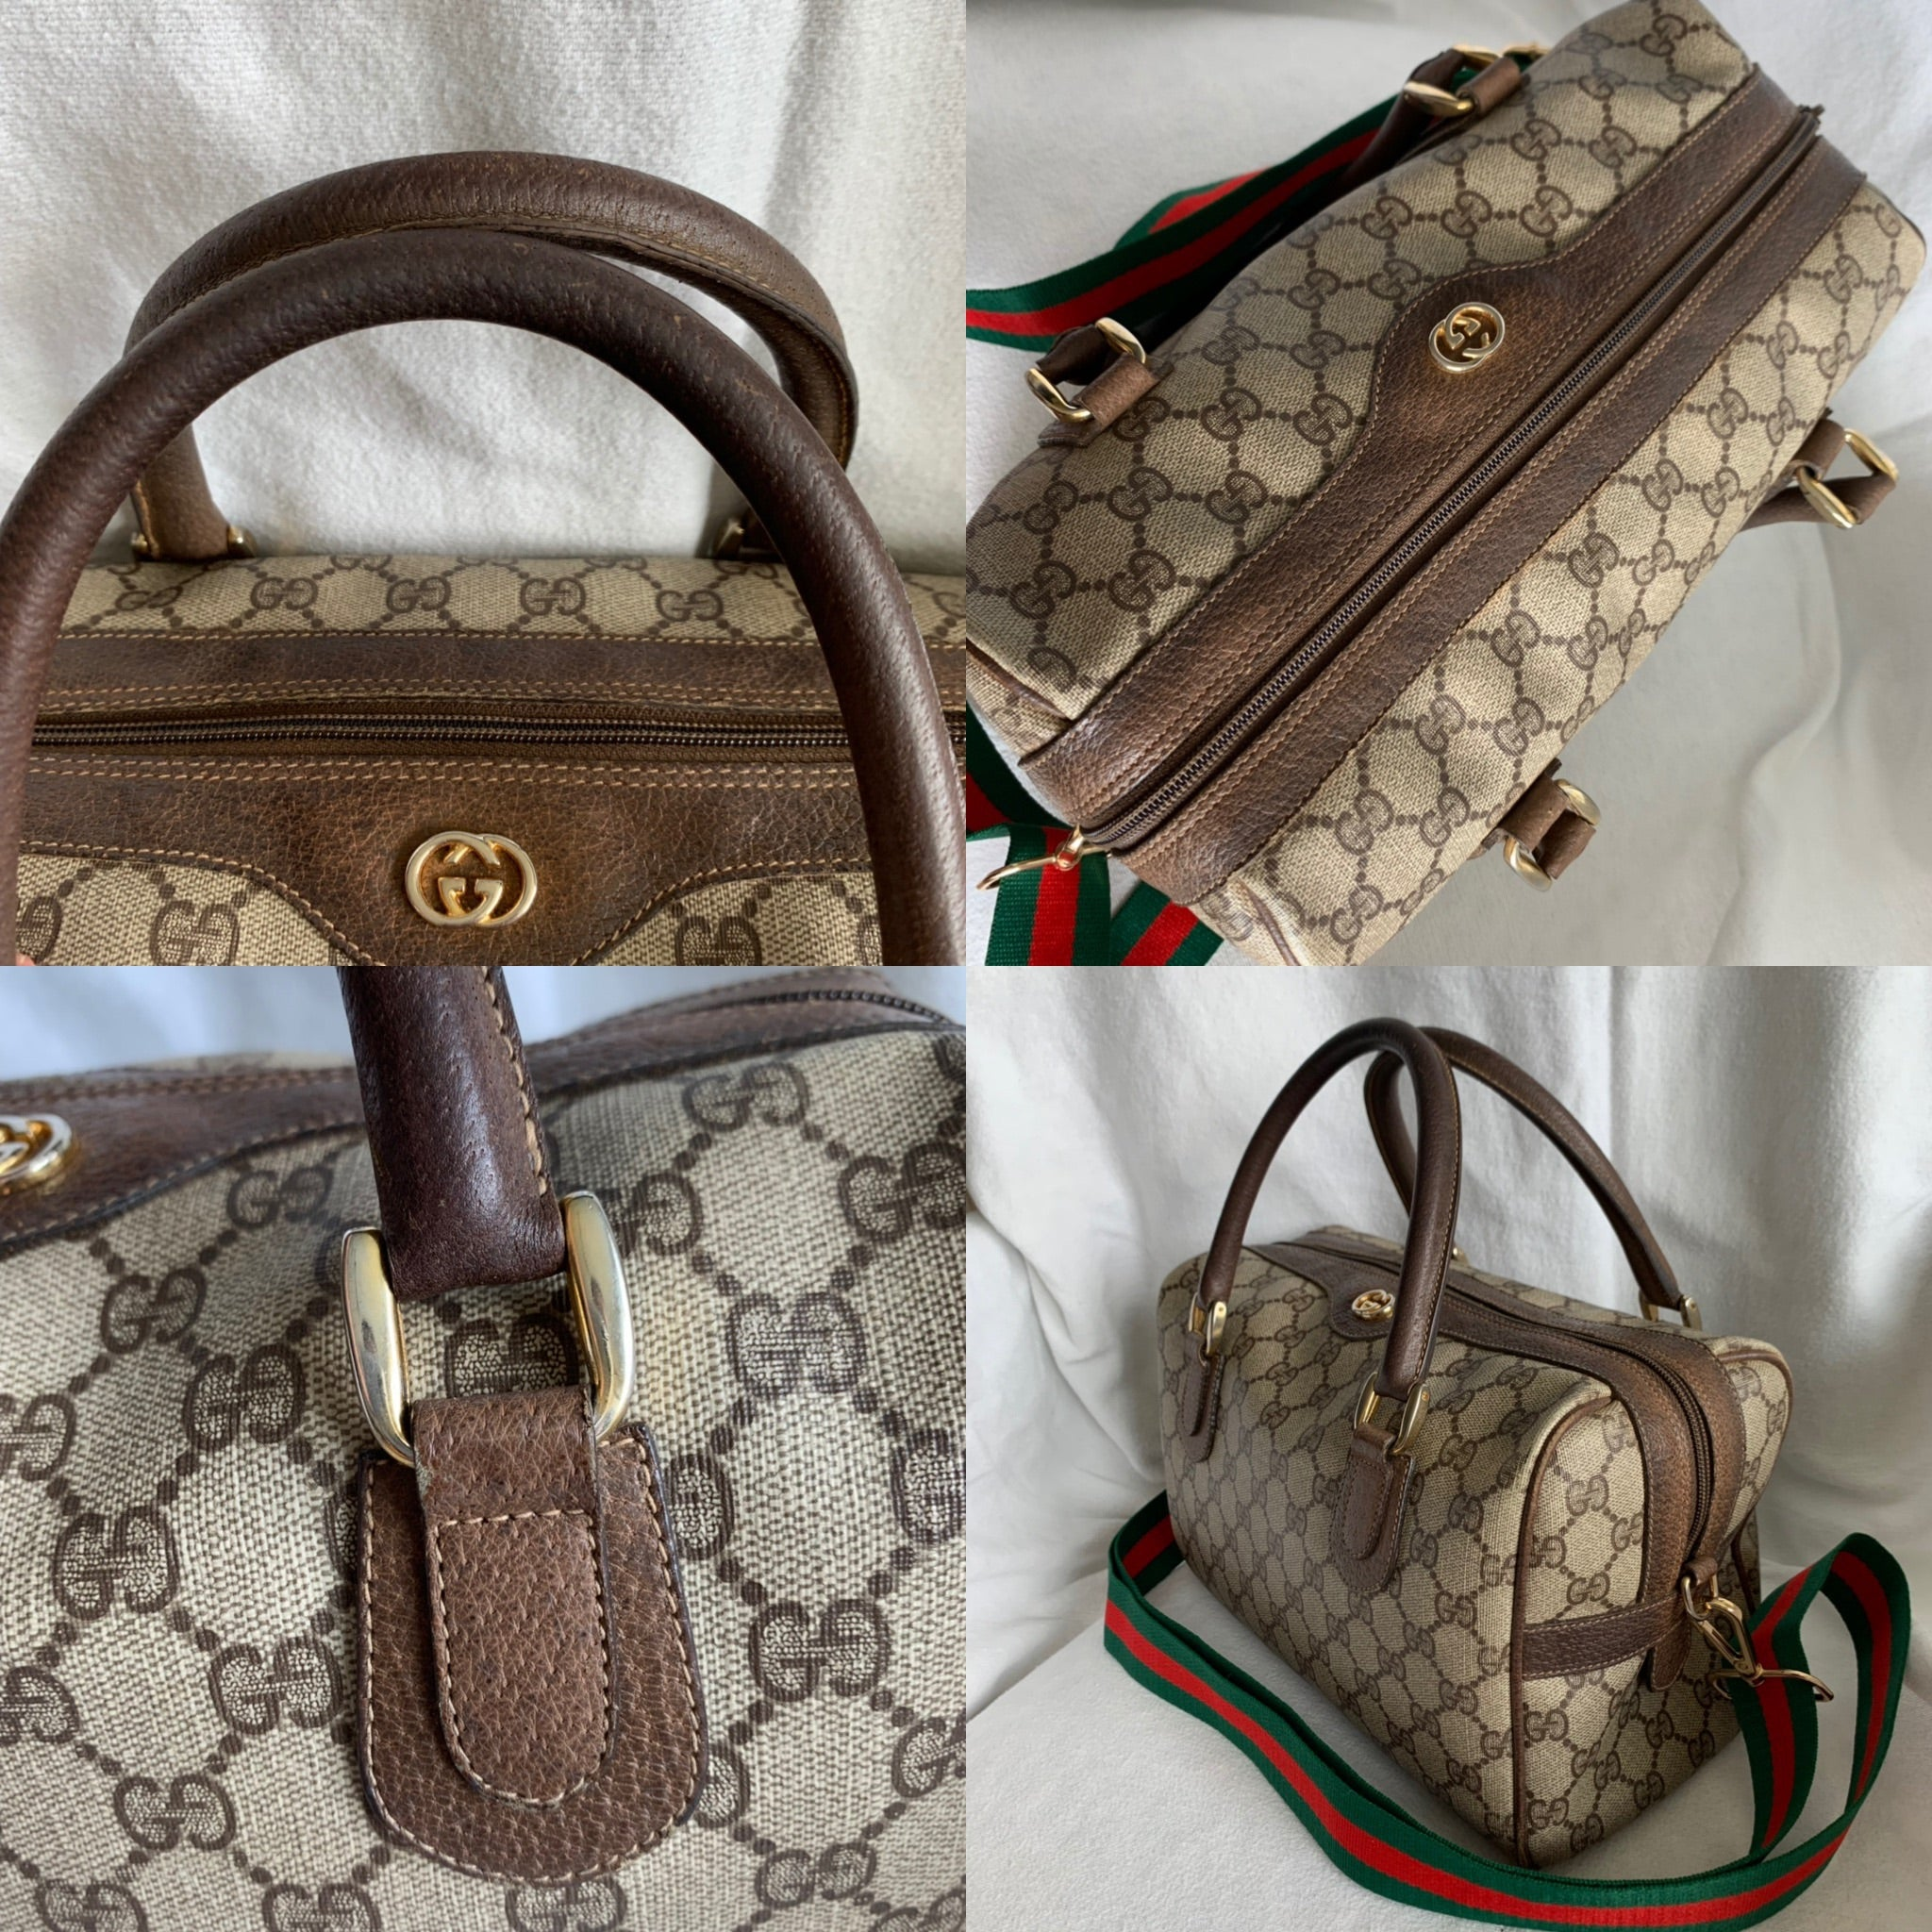 Vintage Gucci Supreme Bag